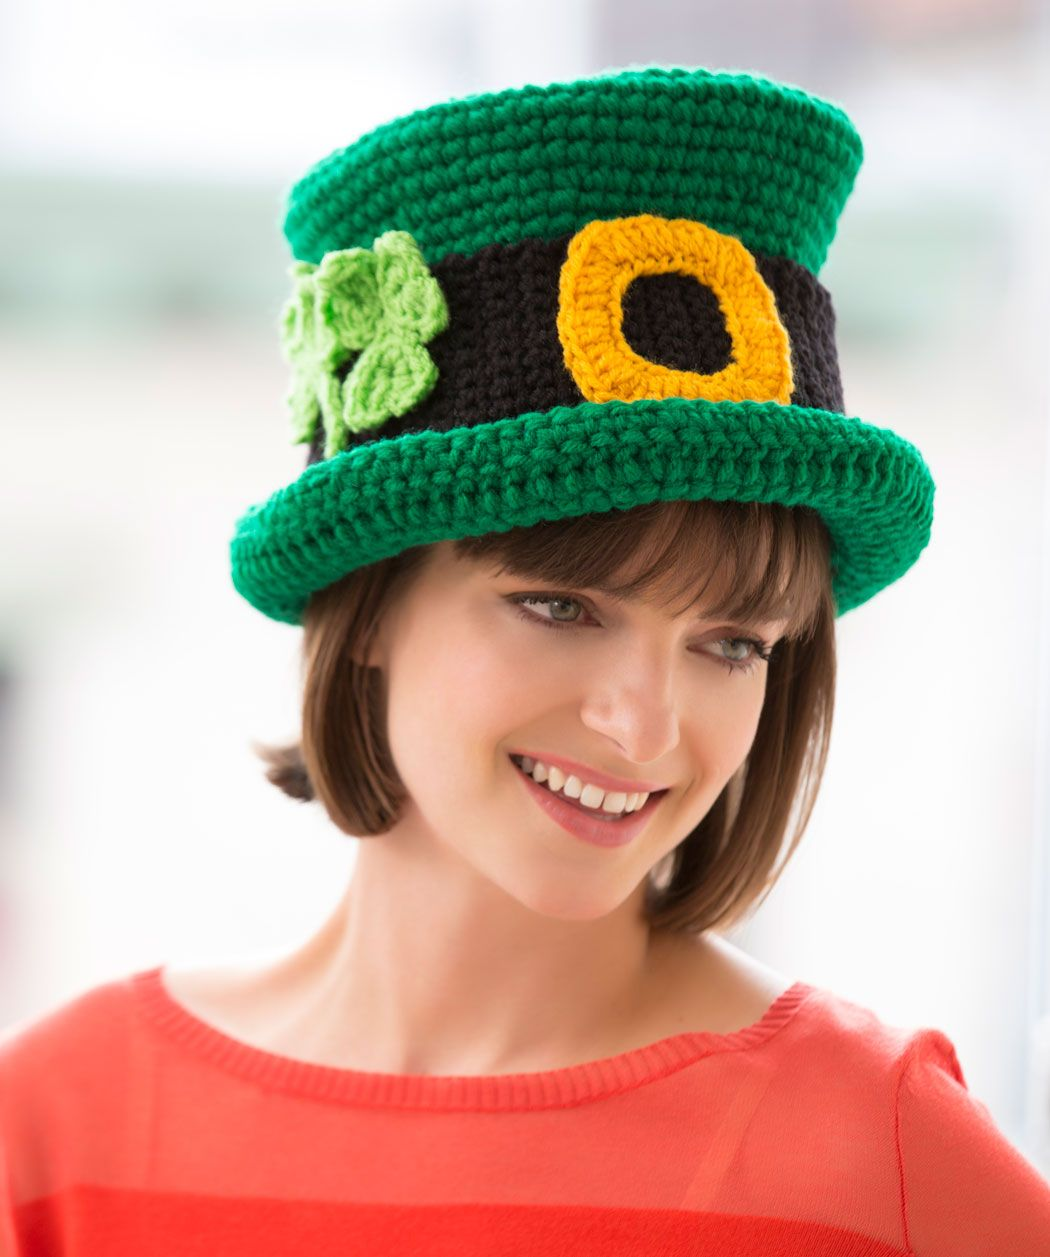 St. Patrick\'s Day Chapeau Free Pattern | Red Heart | Patrick\'s day ...